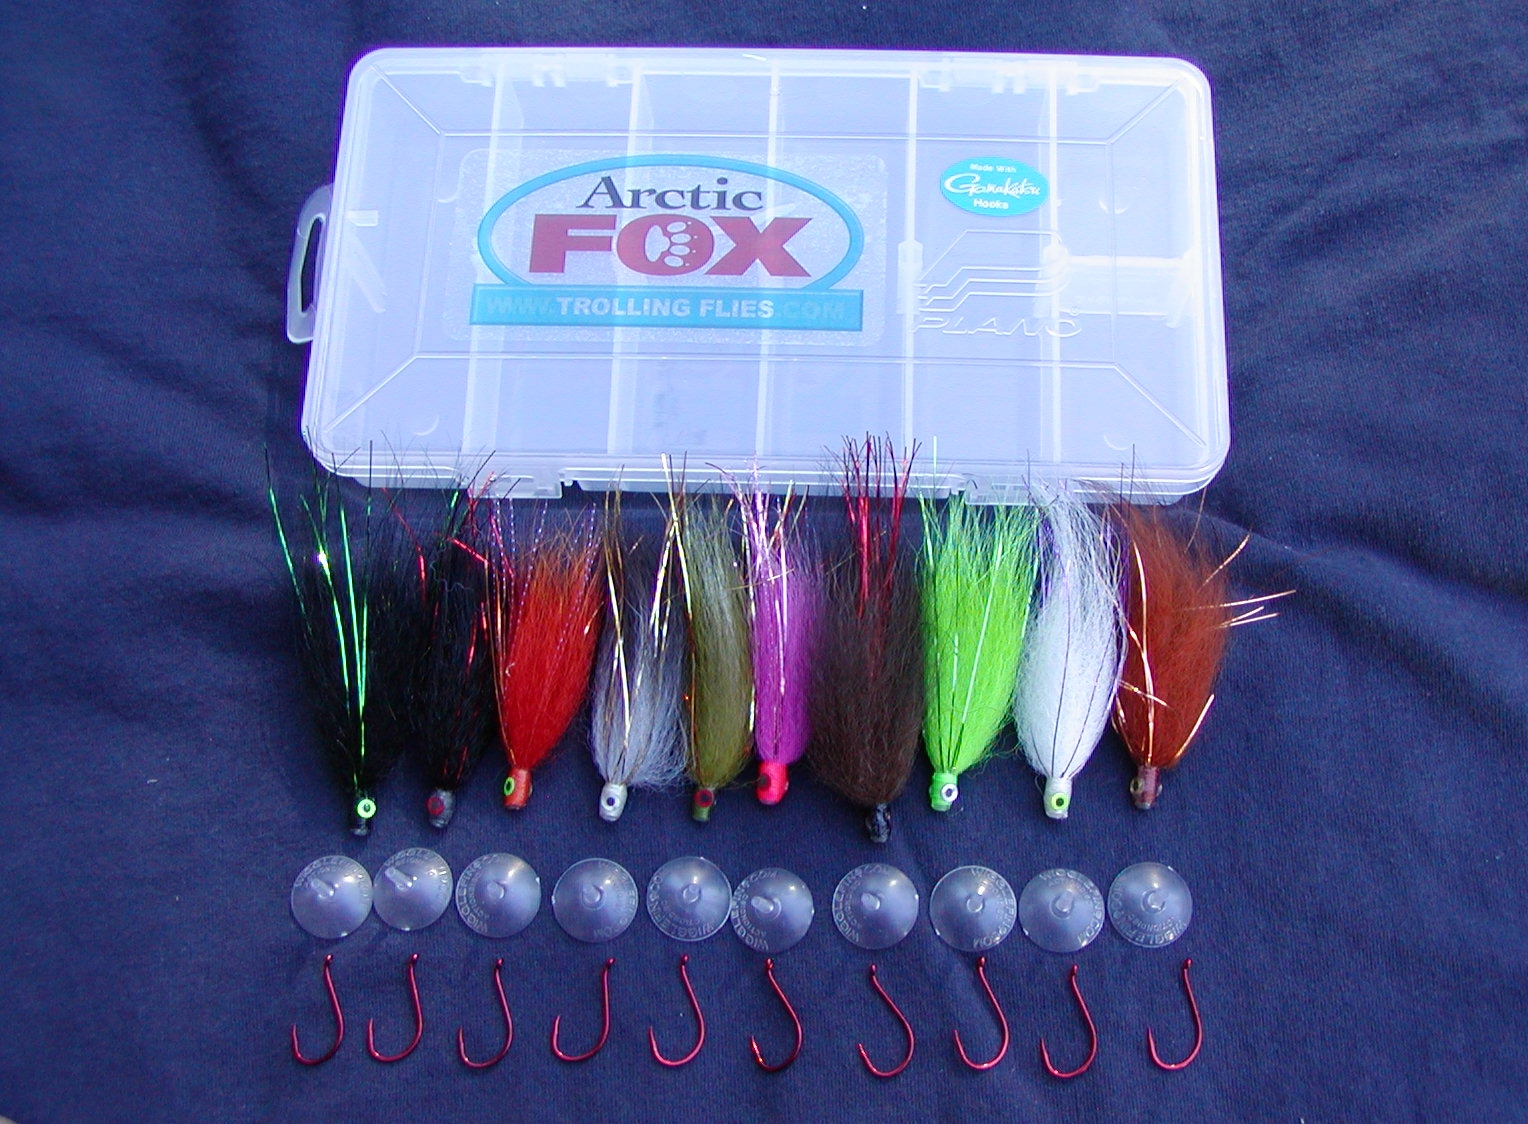 Boxed Selection of 10 Arctic Fox Tube Flies: $29.95